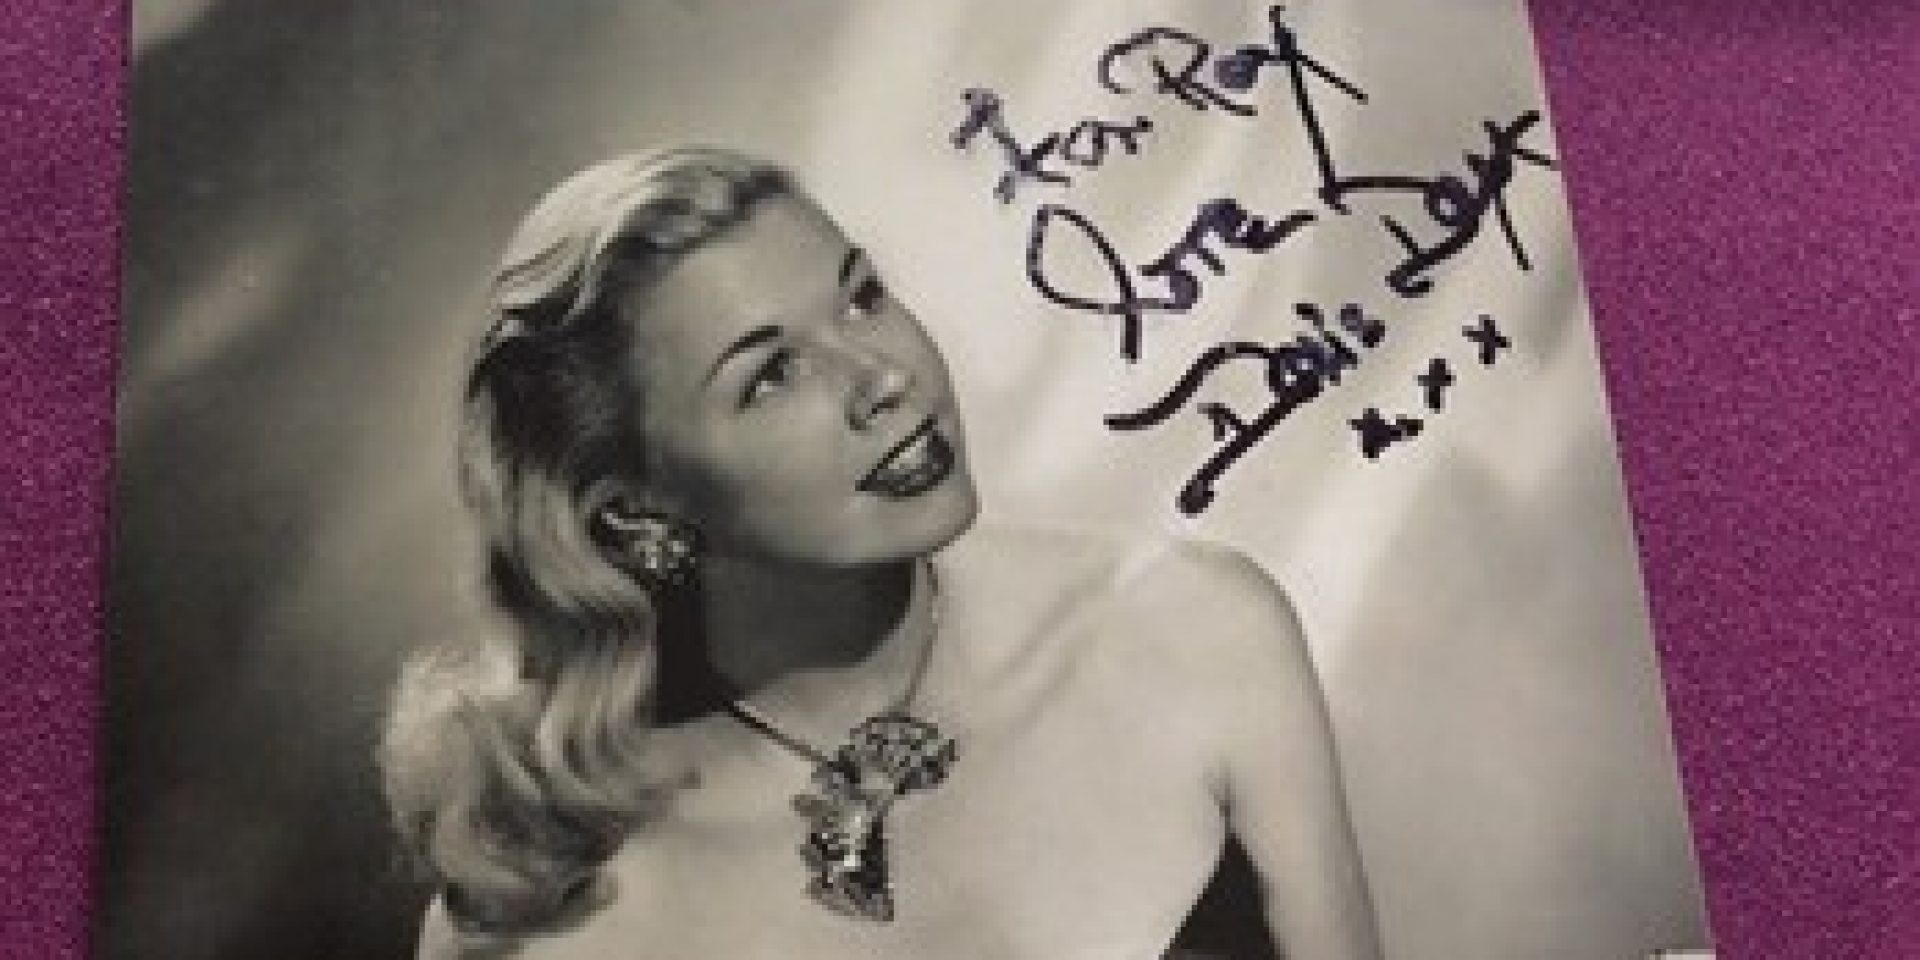 Harleston House resident receives a signed photograph from Doris Day